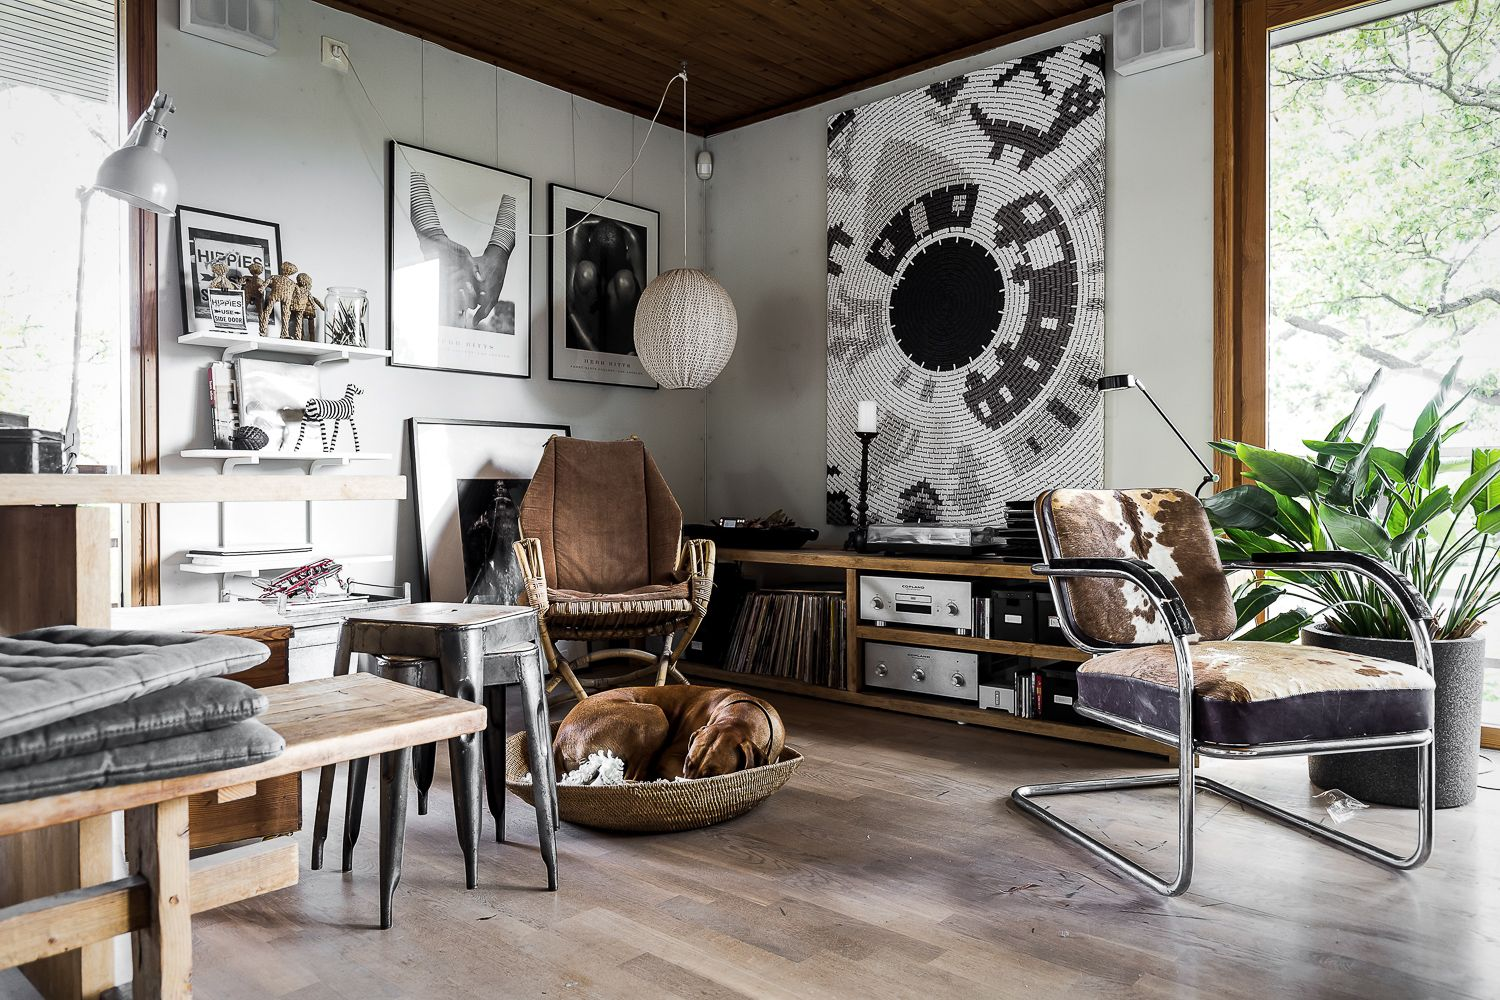 Arne jacobsen interior g  pixels  warm inside  pinterest  cowhide chair